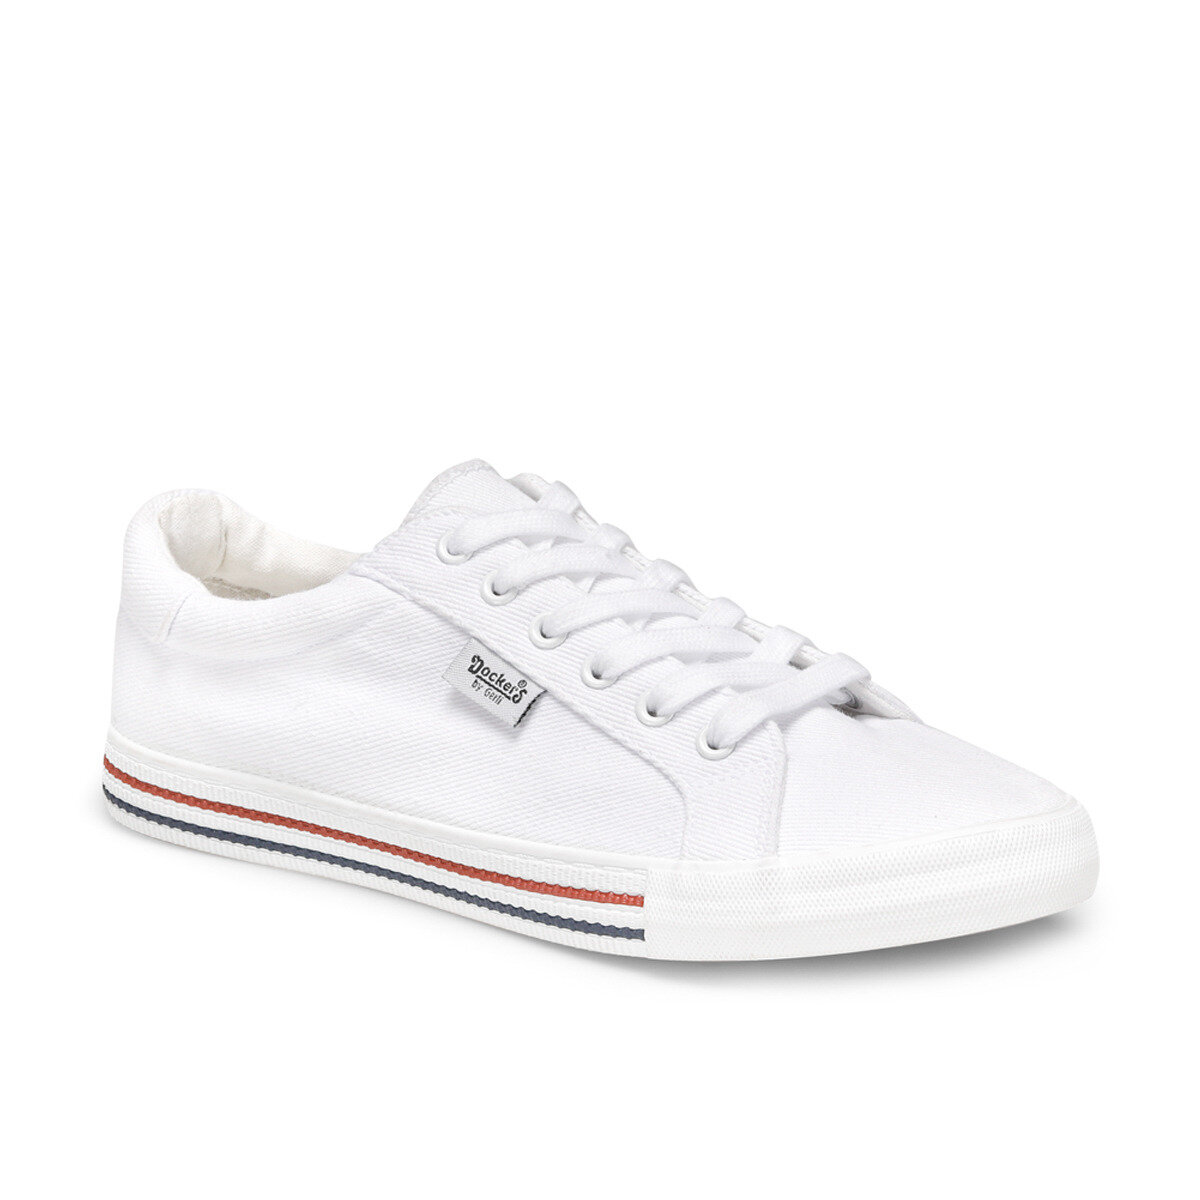 FLO 224554 White Male Sneaker By Dockers The Gerle